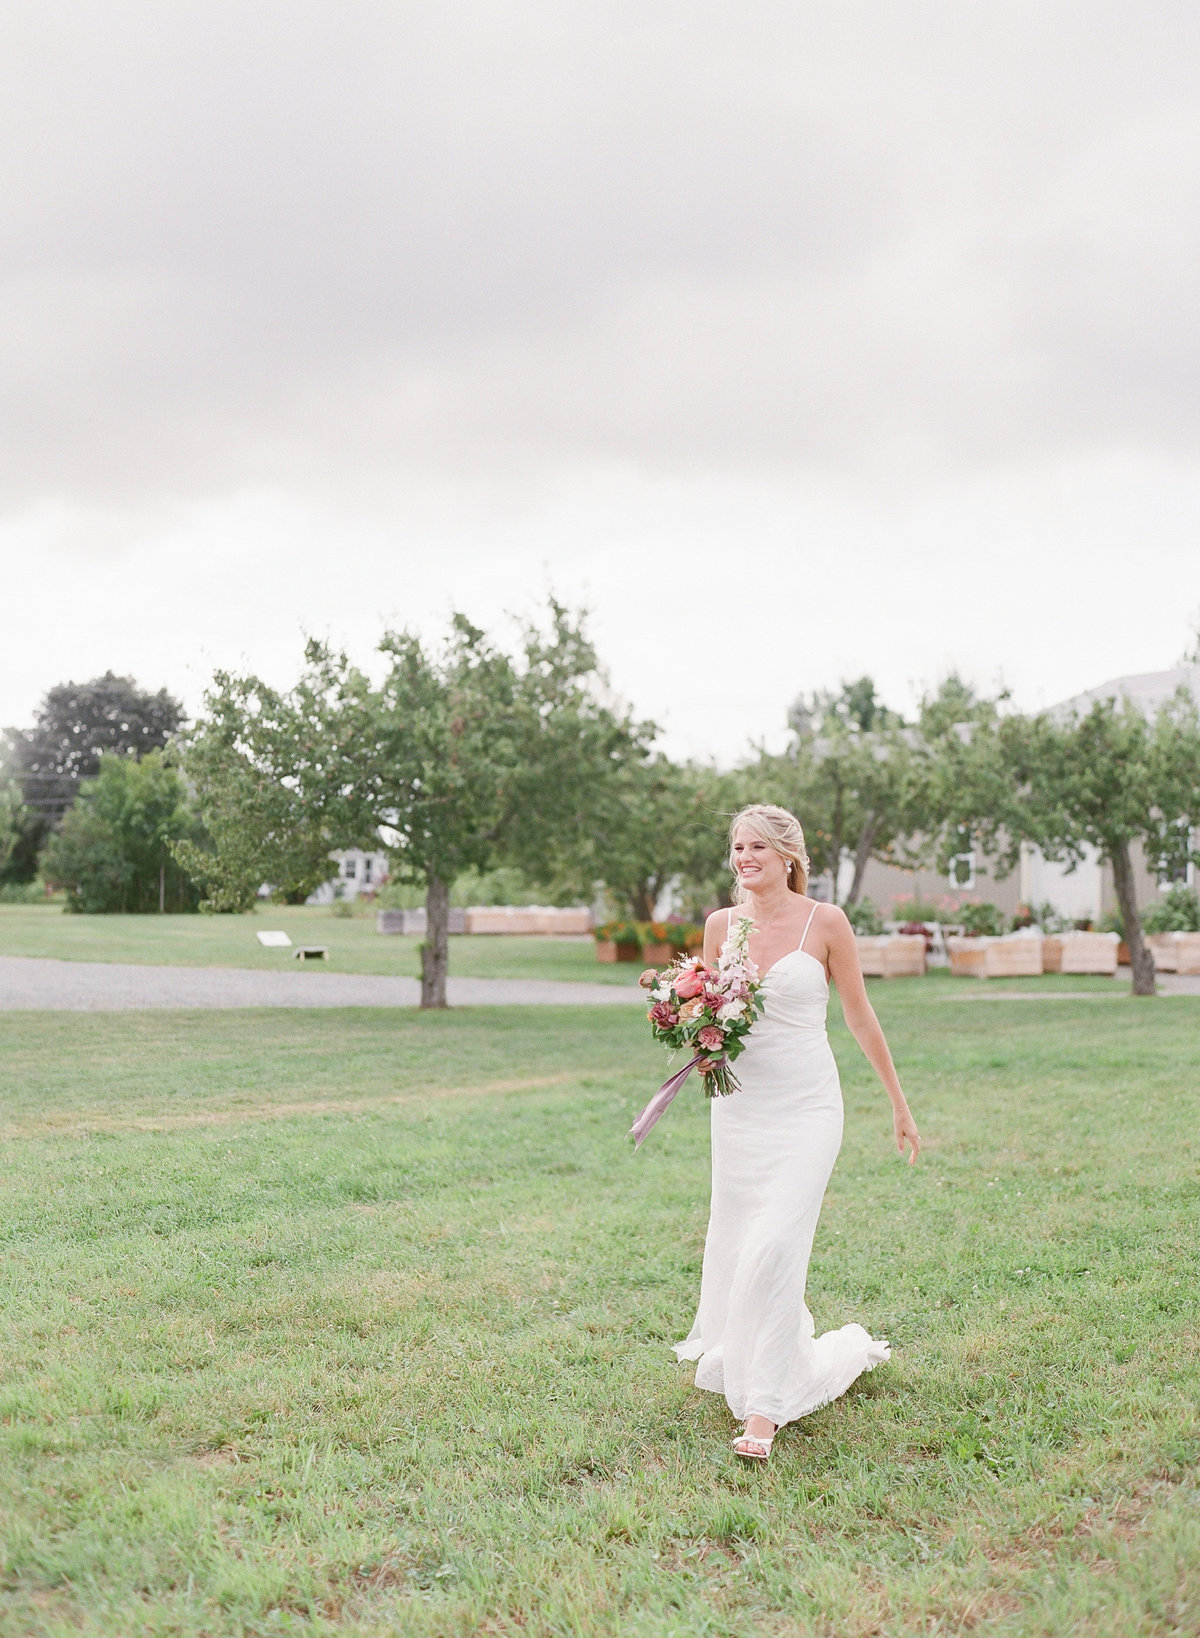 Jacqueline Anne Photography - Lindsay and Tommy-171